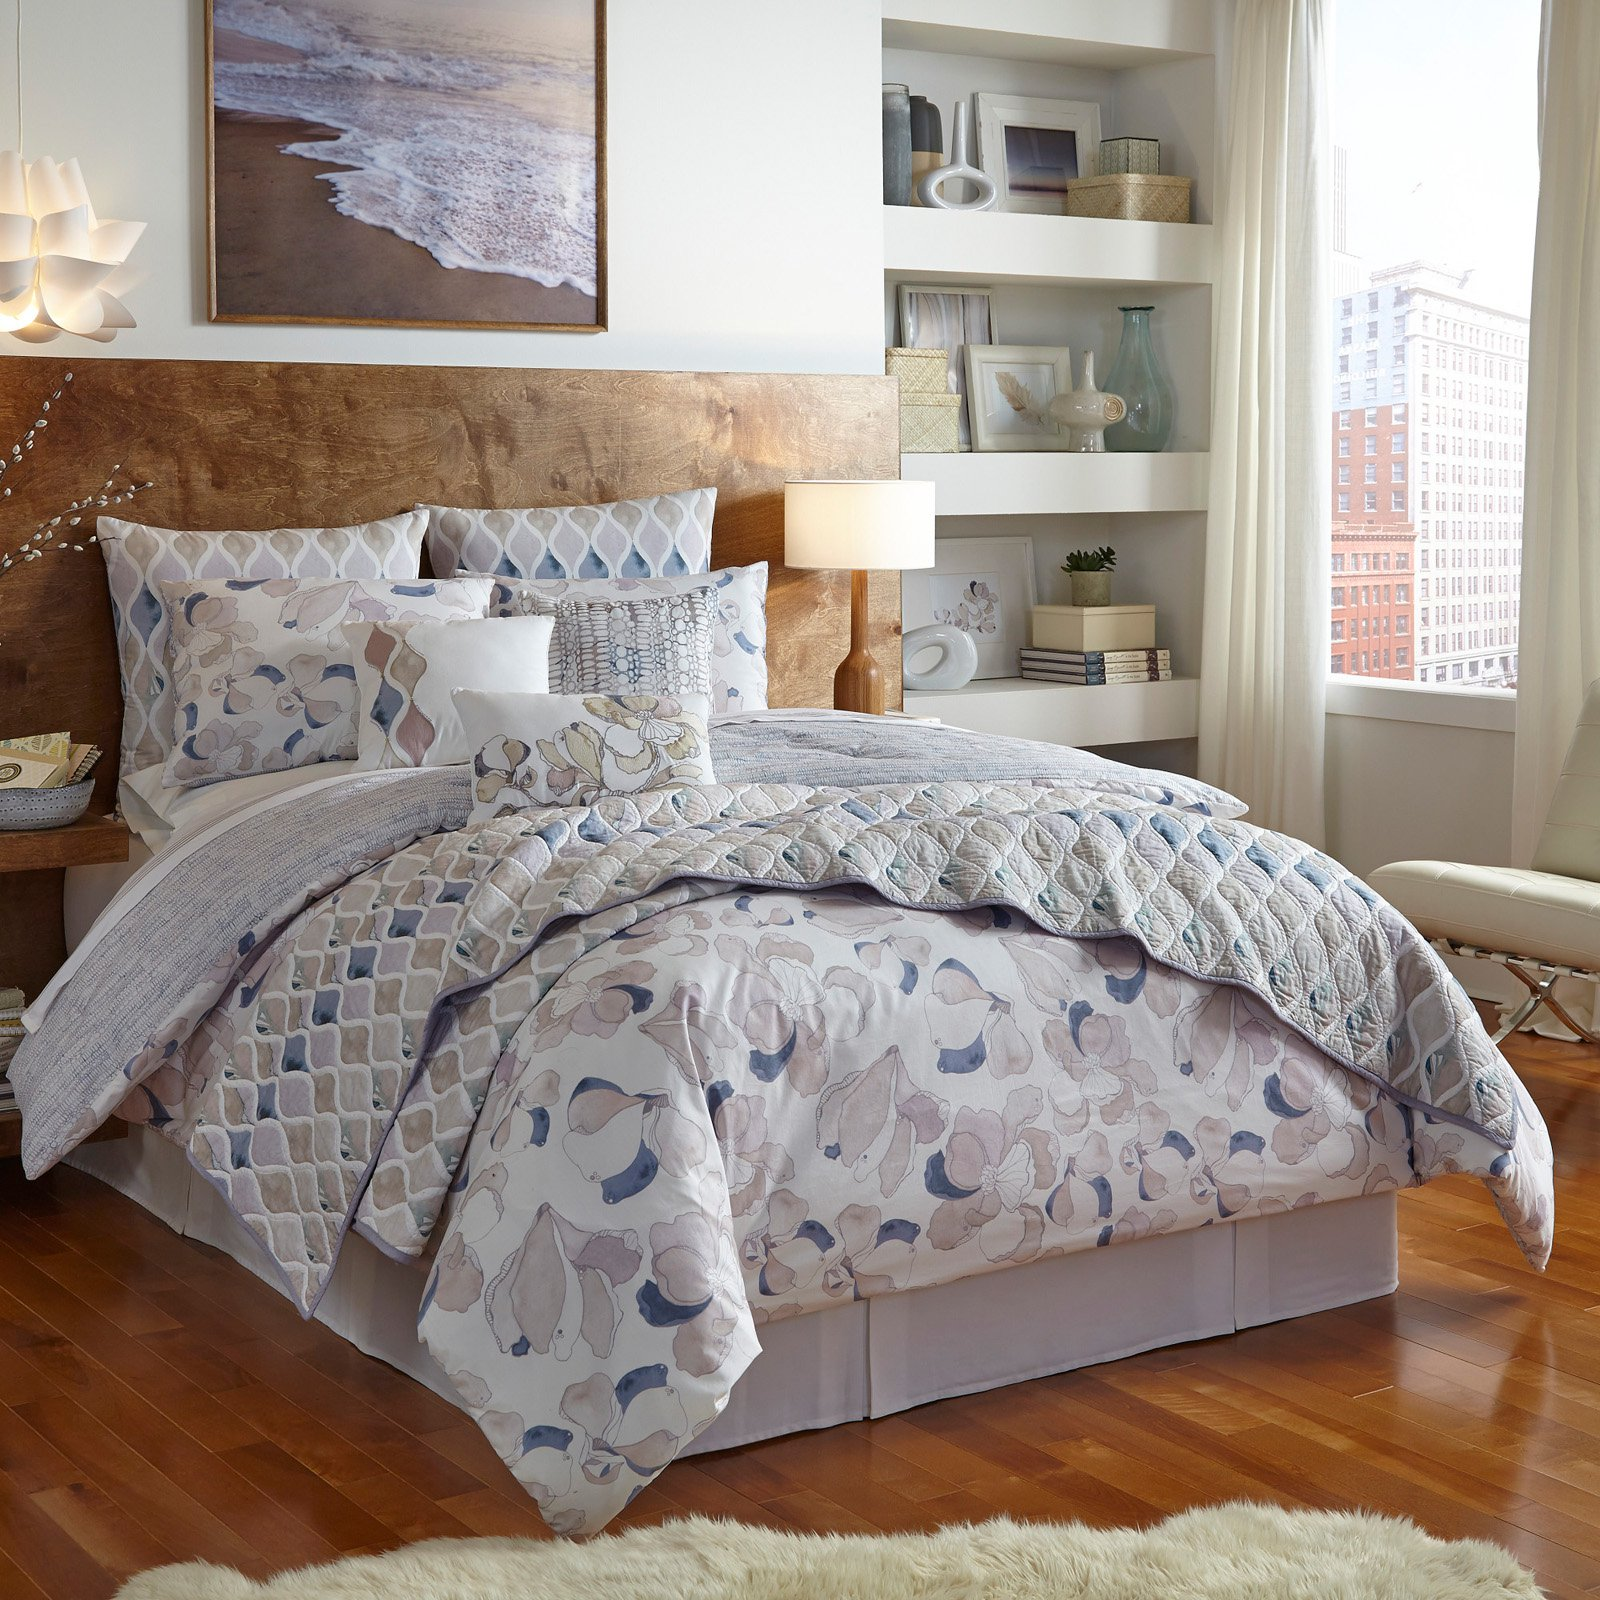 Stout Magnolia Reversible Comforter Set by Shell Rummel